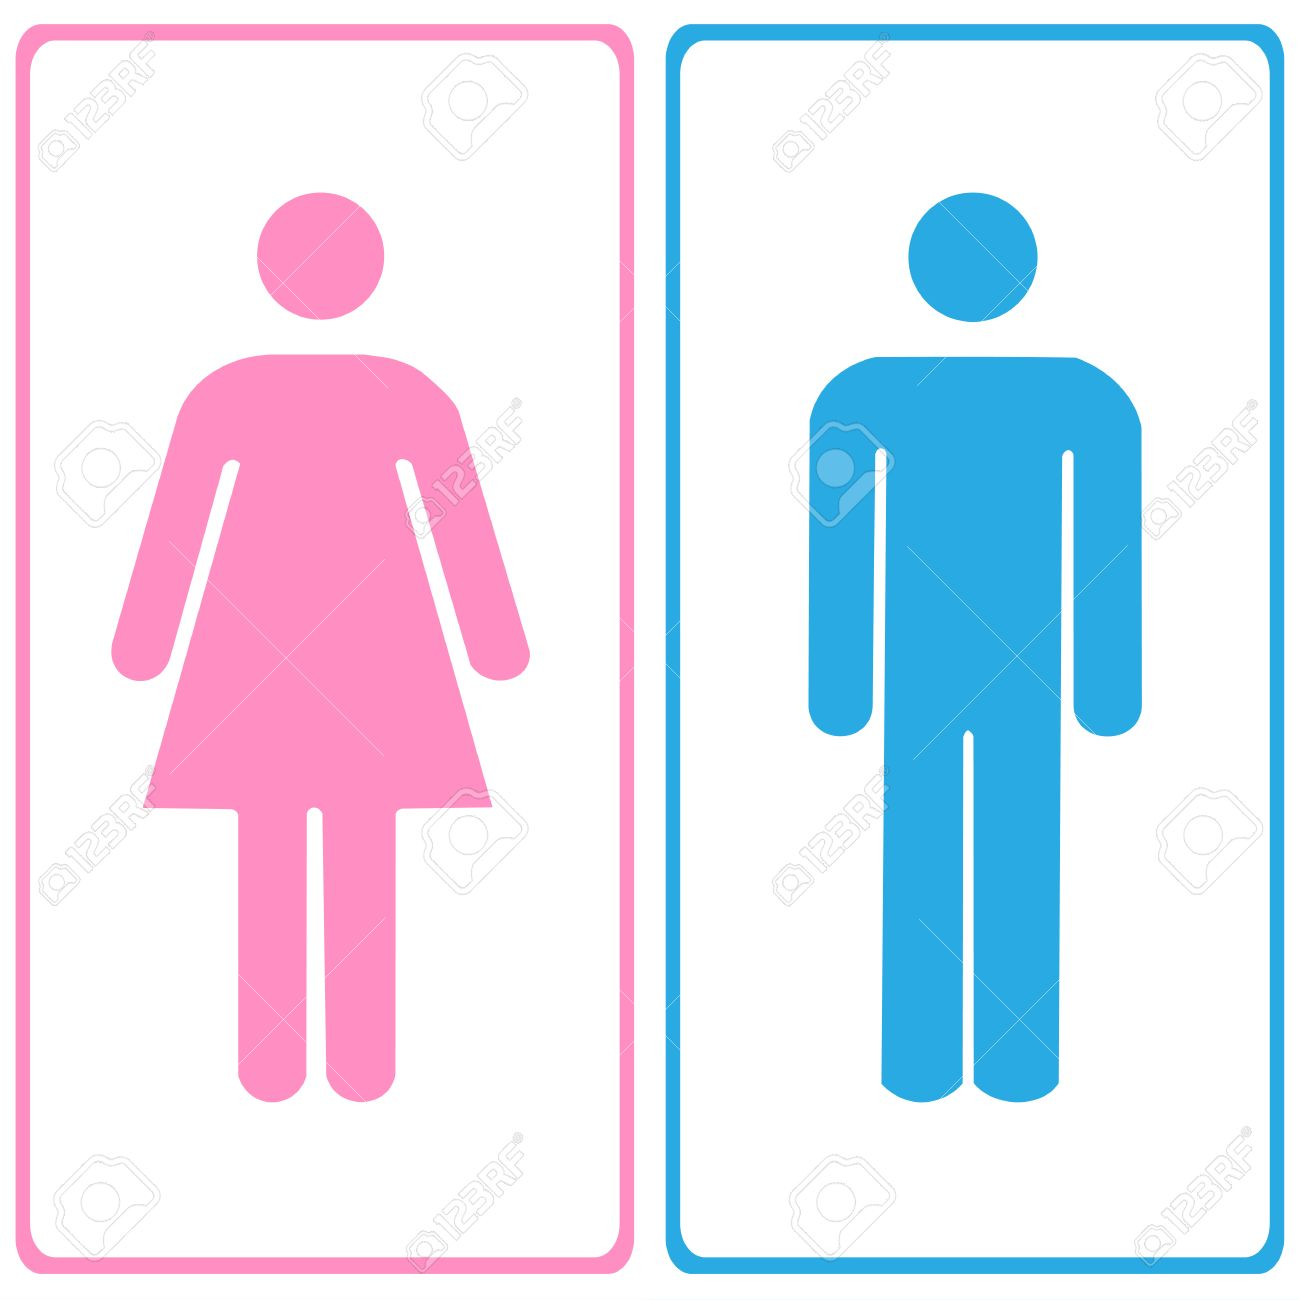 Bathroom Sign Male Vector vector a man and a lady toilet sign illustration royalty free